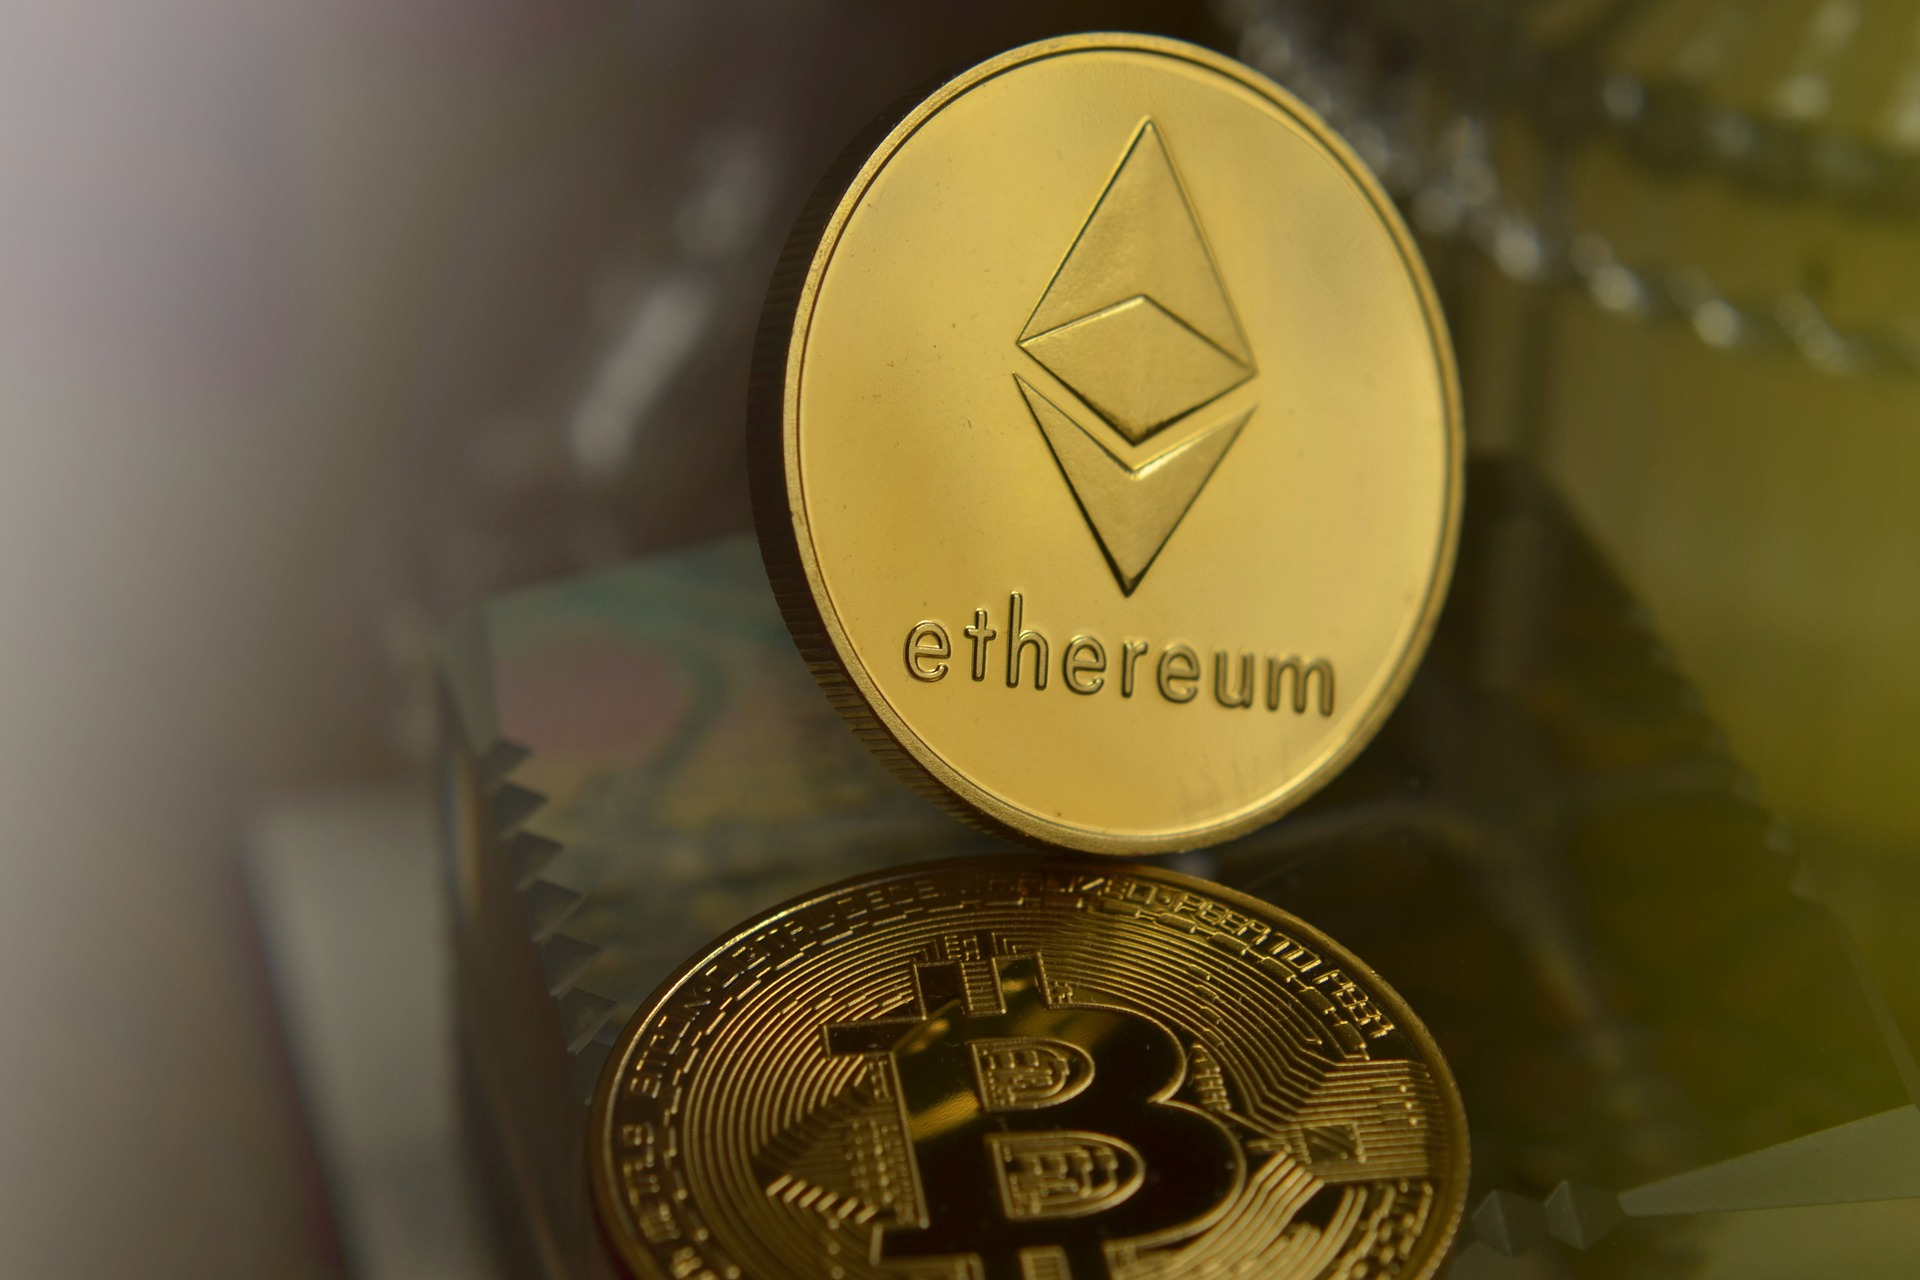 Ethereum may be inching ahead of Bitcoin in this race